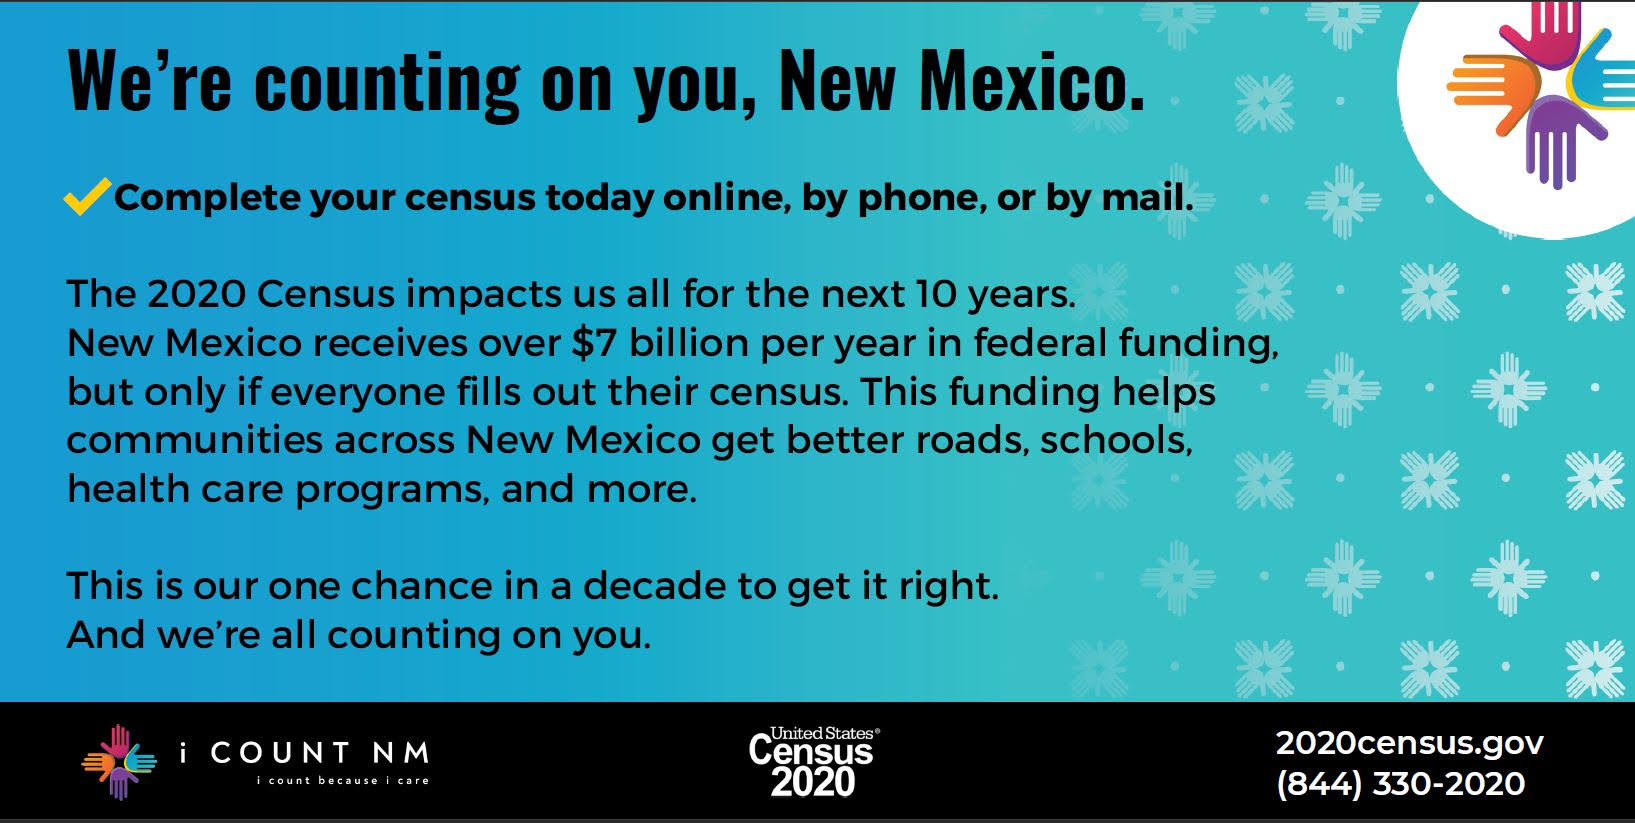 Complete your census today online, by phone or by mail. 2020census.gov (844)330-2020